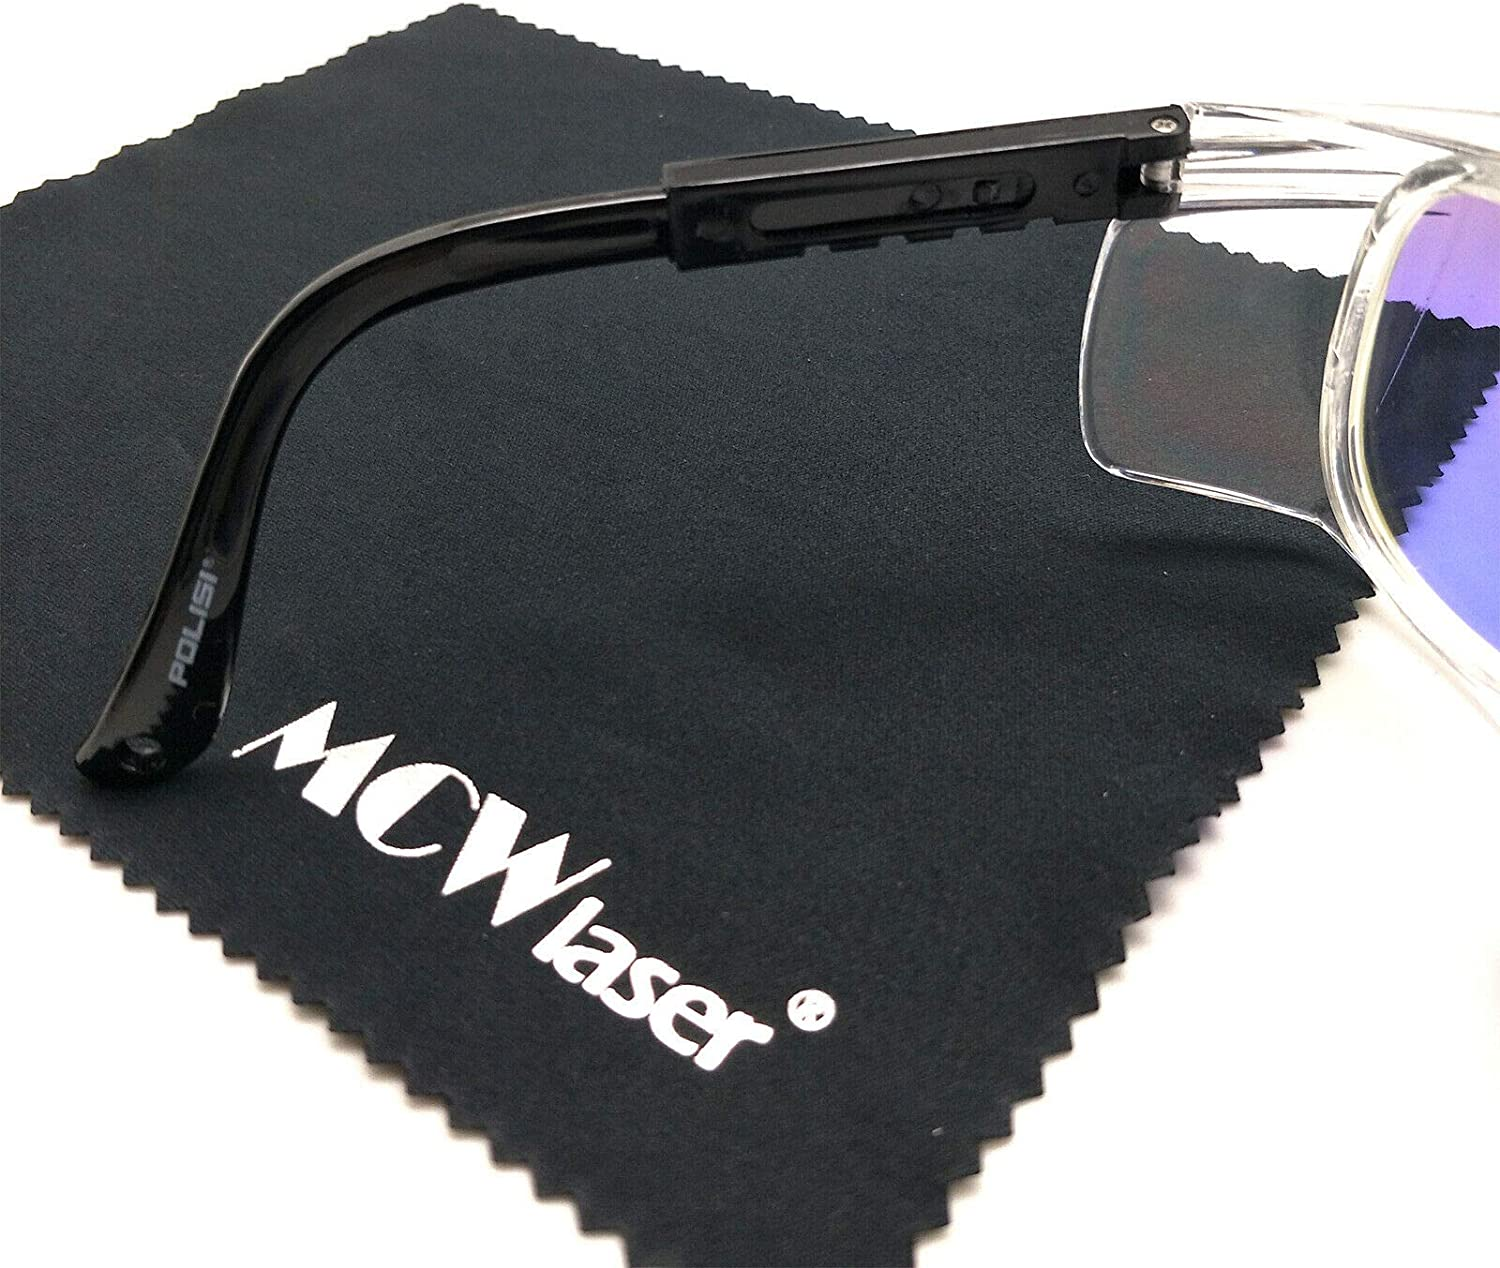 MCWlaser CO2 Laser Safty Protective Goggles Glasses 10600nm 10.6um Reflective Type CO2 Laser Eyewear For CO2 Laser Engraving Cuttinge Beauty Treatment Instrument EP-25